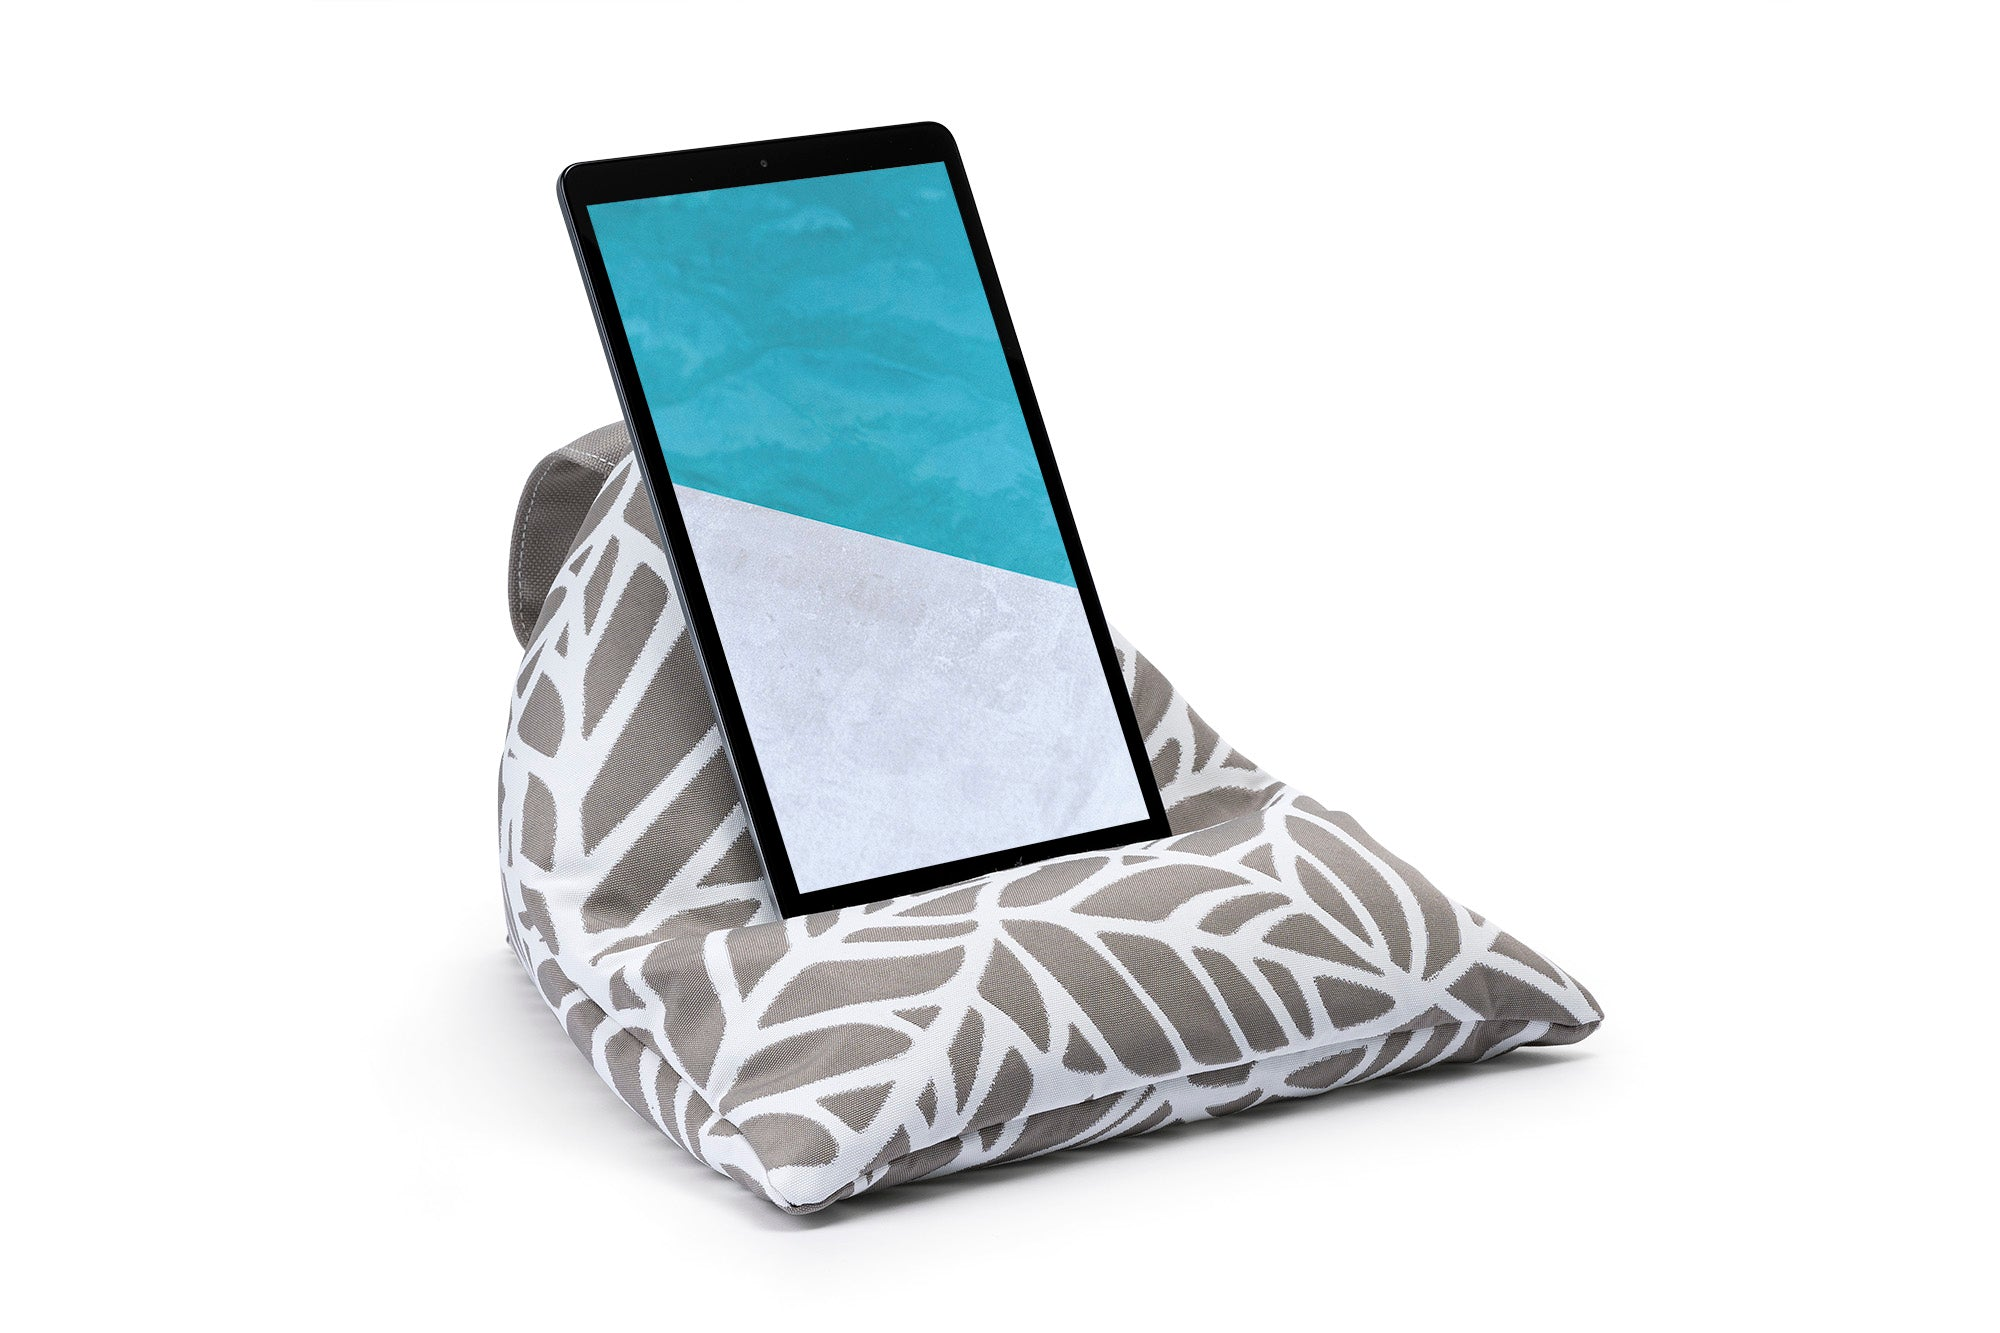 iPad, Tablet & eReader Bean Bag Stand in Palm Pumice